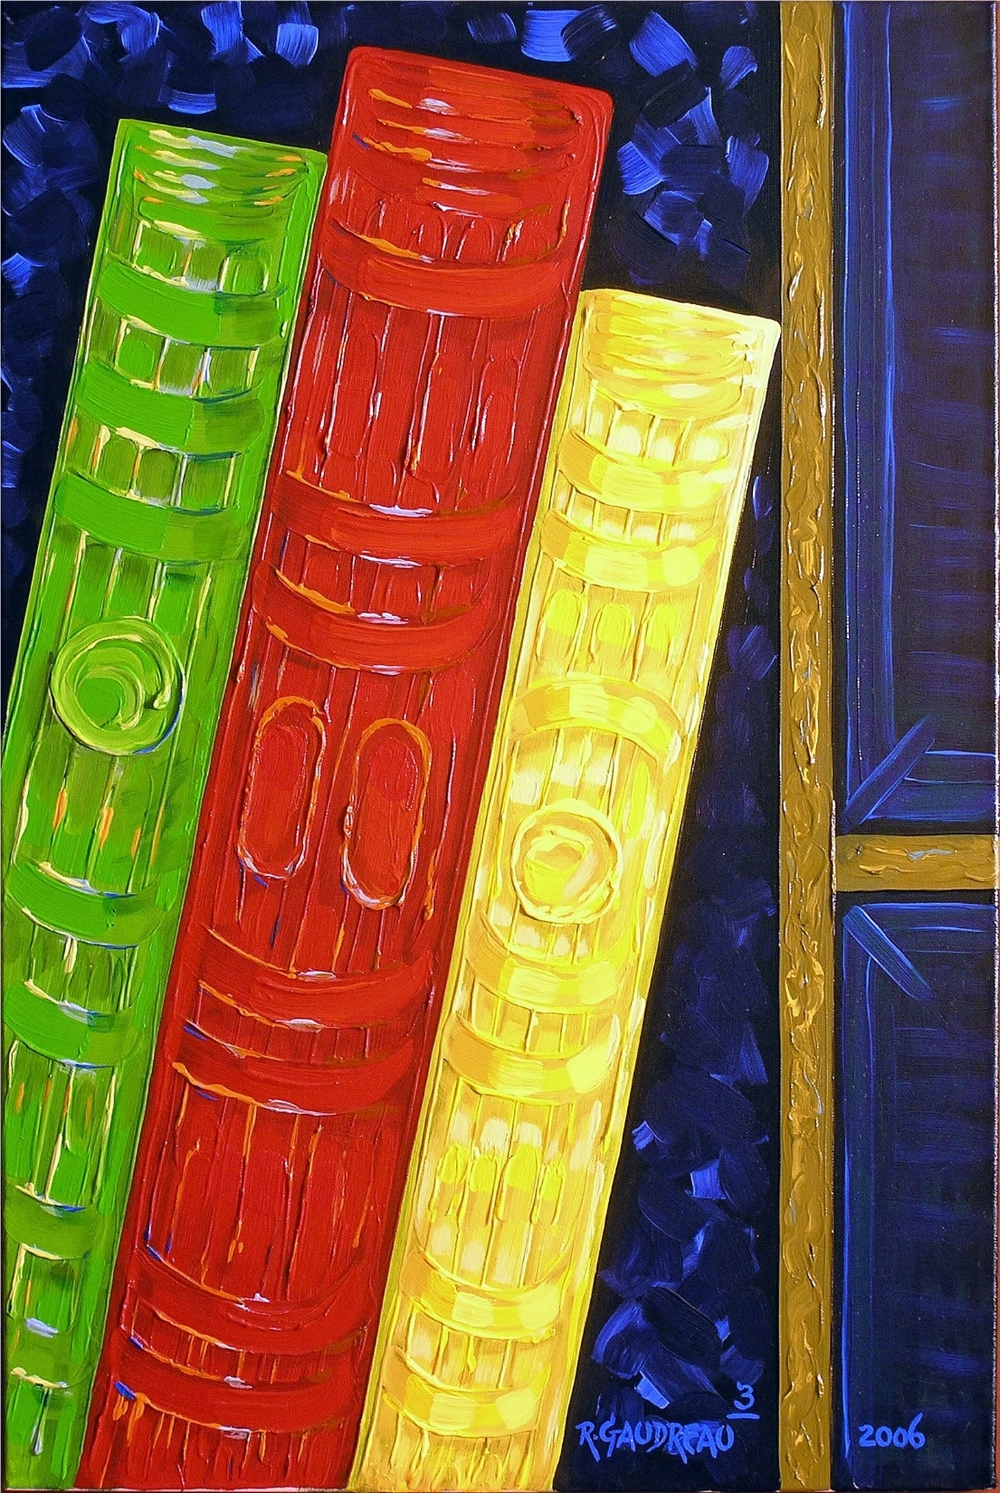 3 Books 2006 oil on canvas 36 x 24 inches